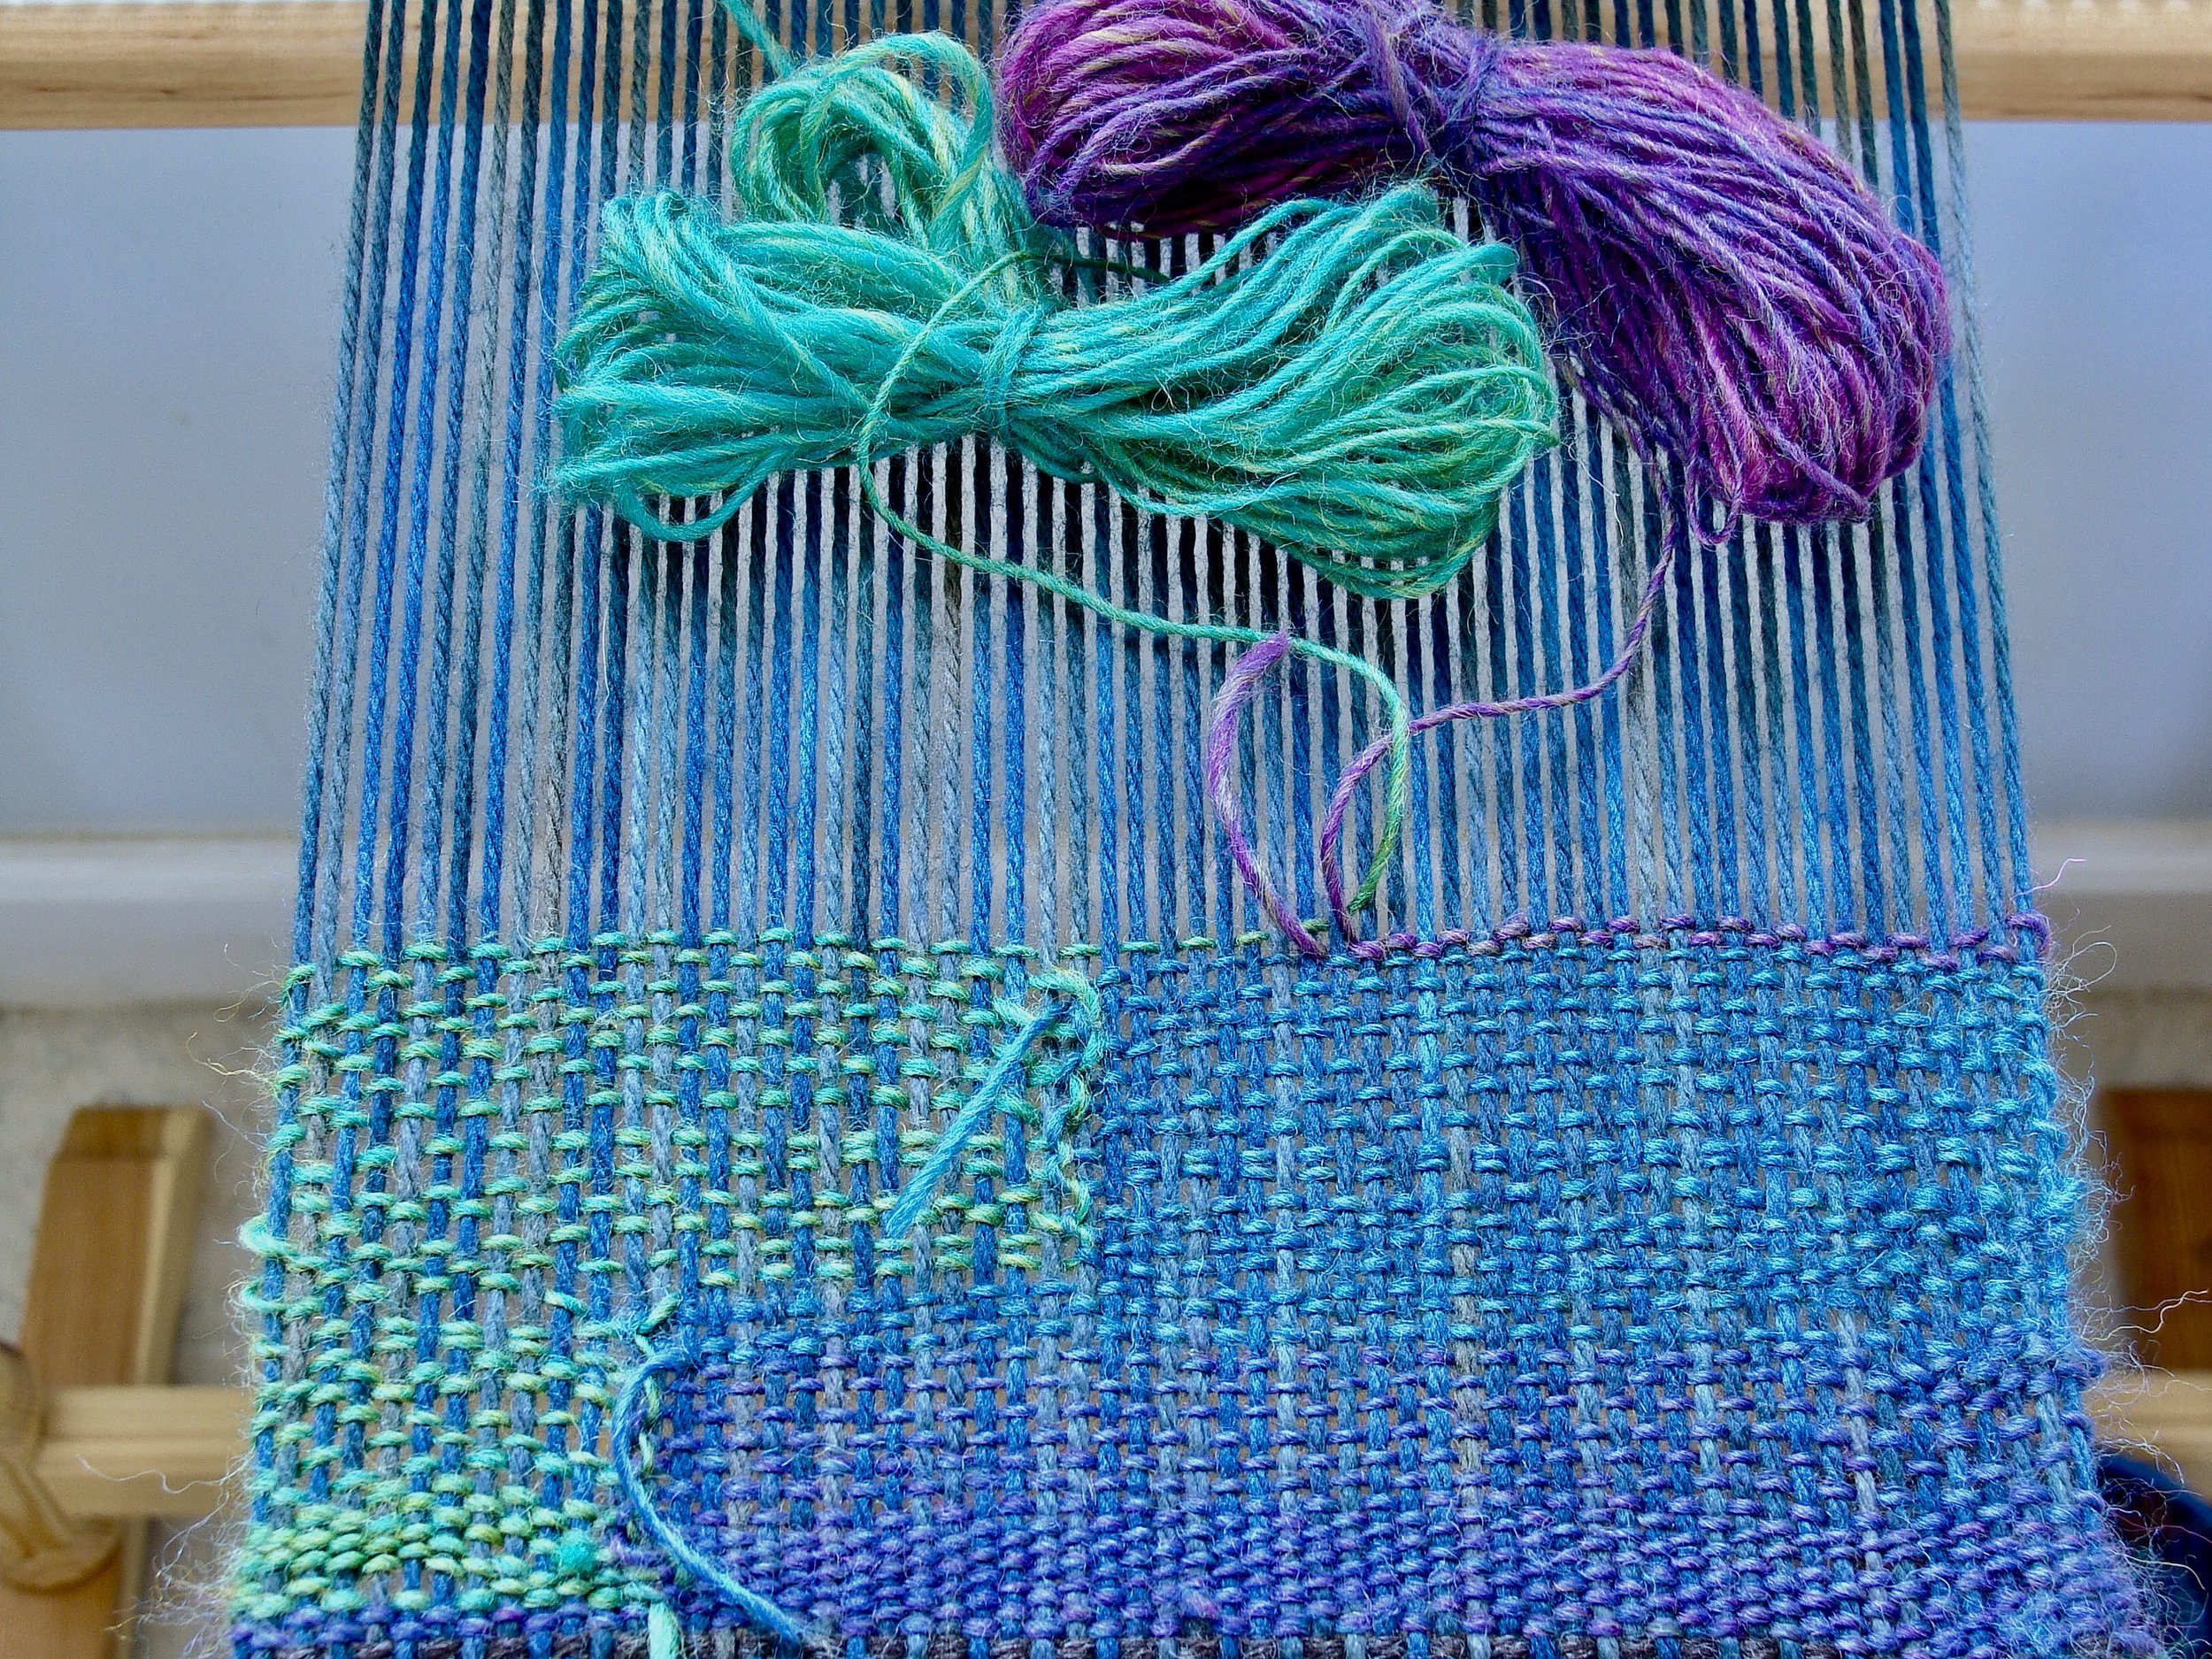 woven-stained-glass-scarf-rigid-heddle